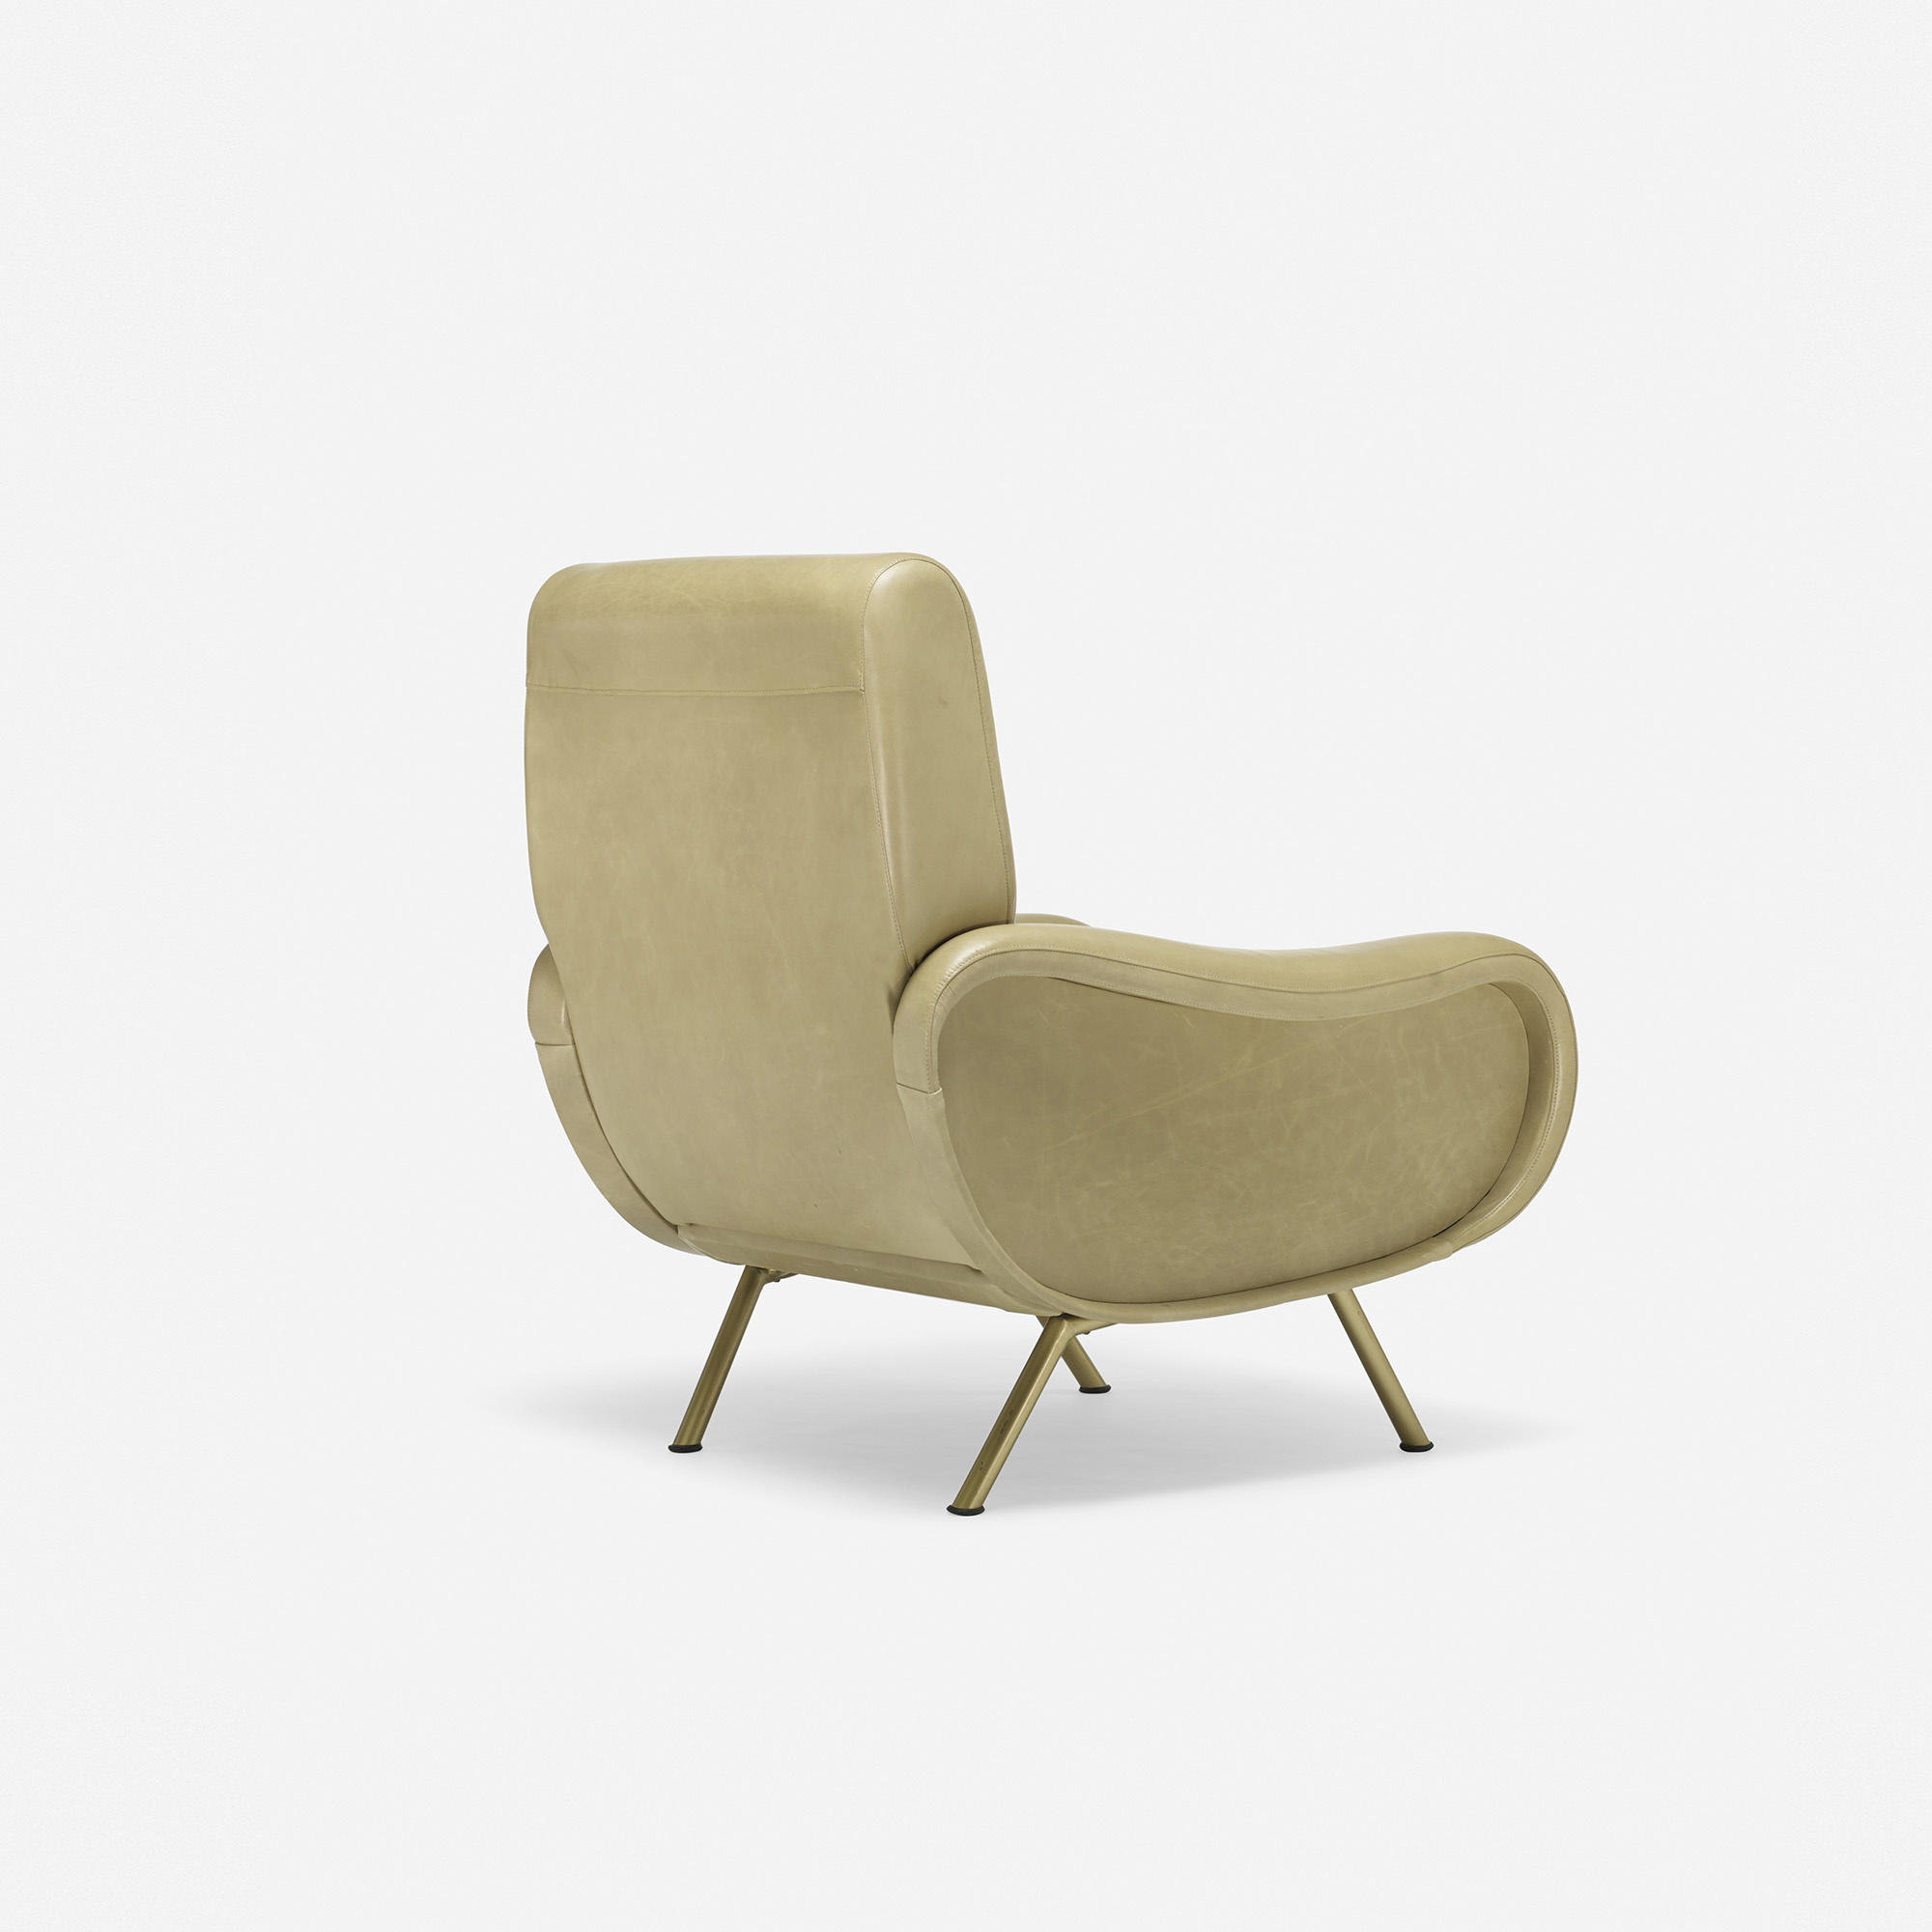 232 marco zanuso lady chair for Chair design 2000